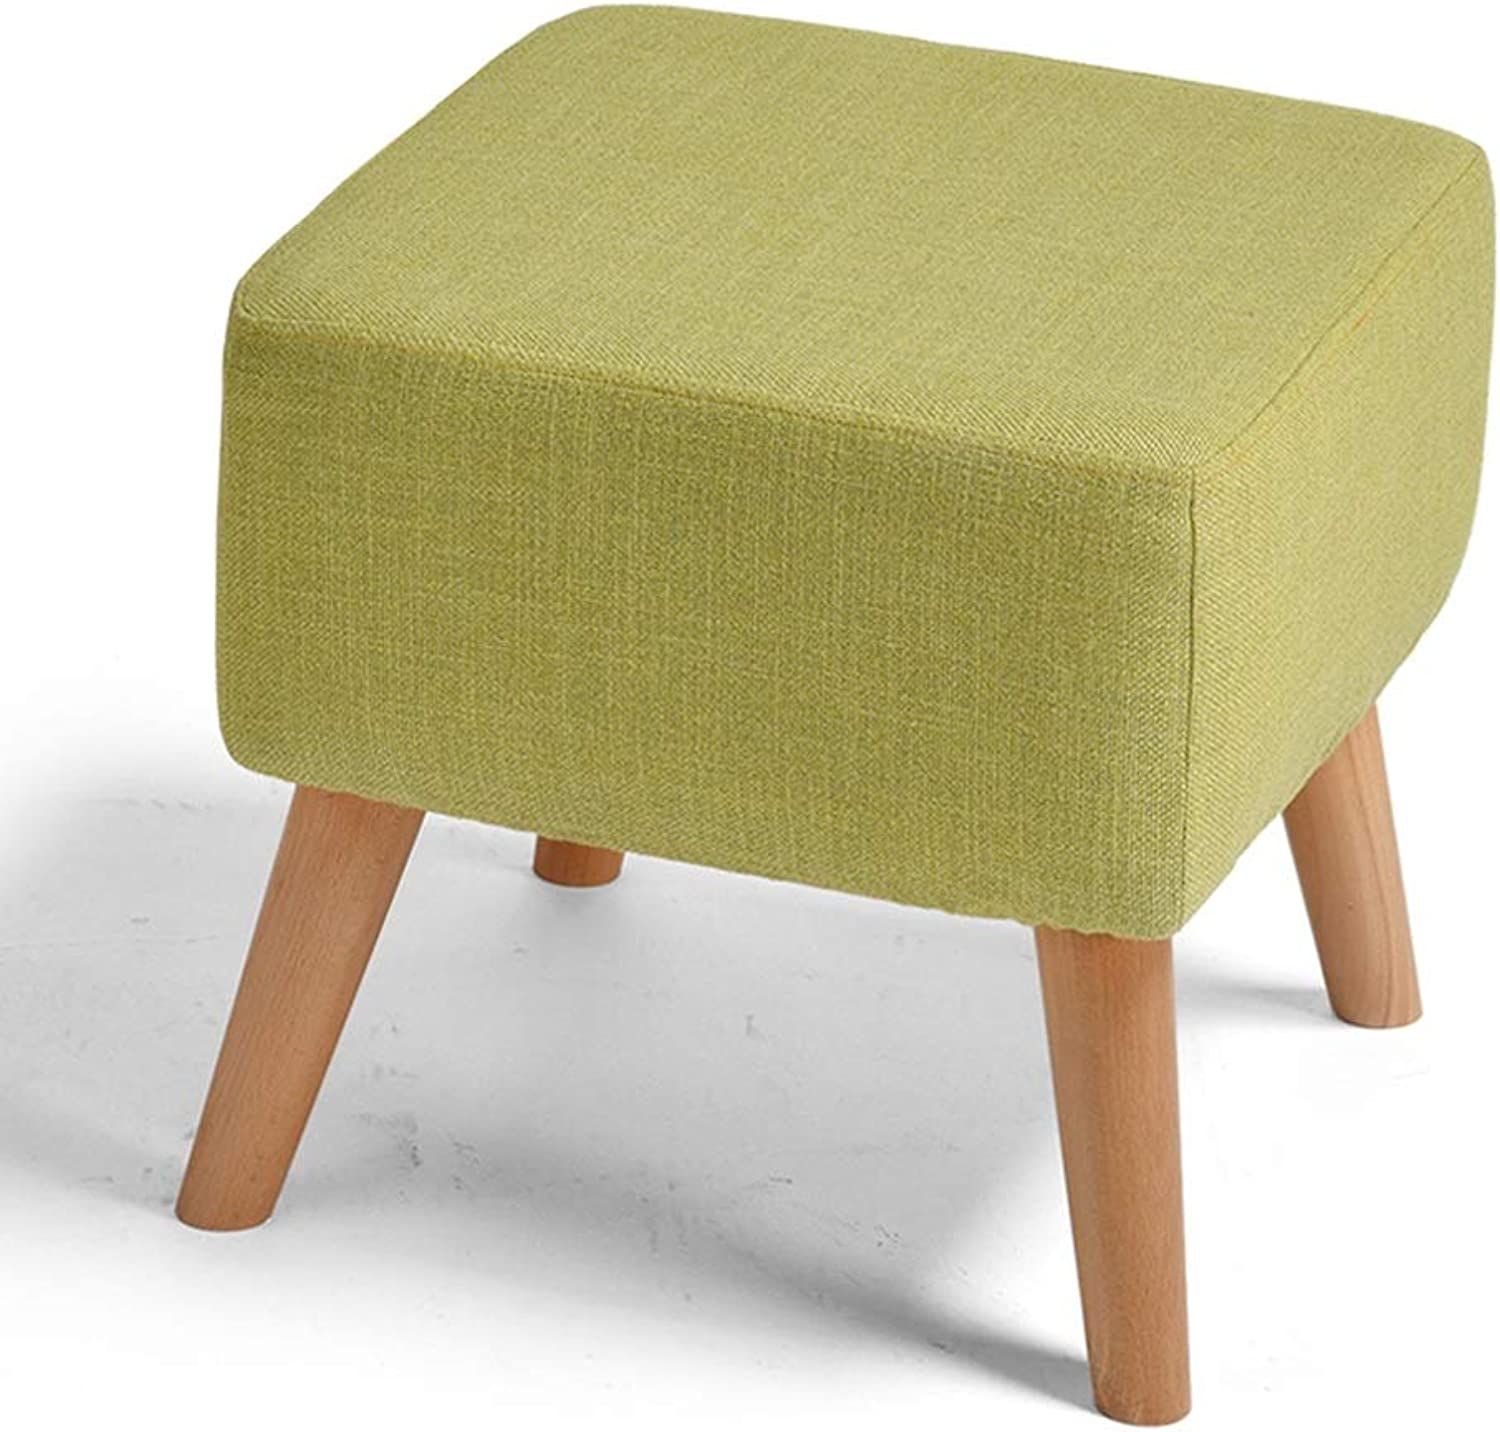 SUNNY Solid Wood Change shoes Bench Small Stool Sofa Stool Dressing Stool (color   C2)